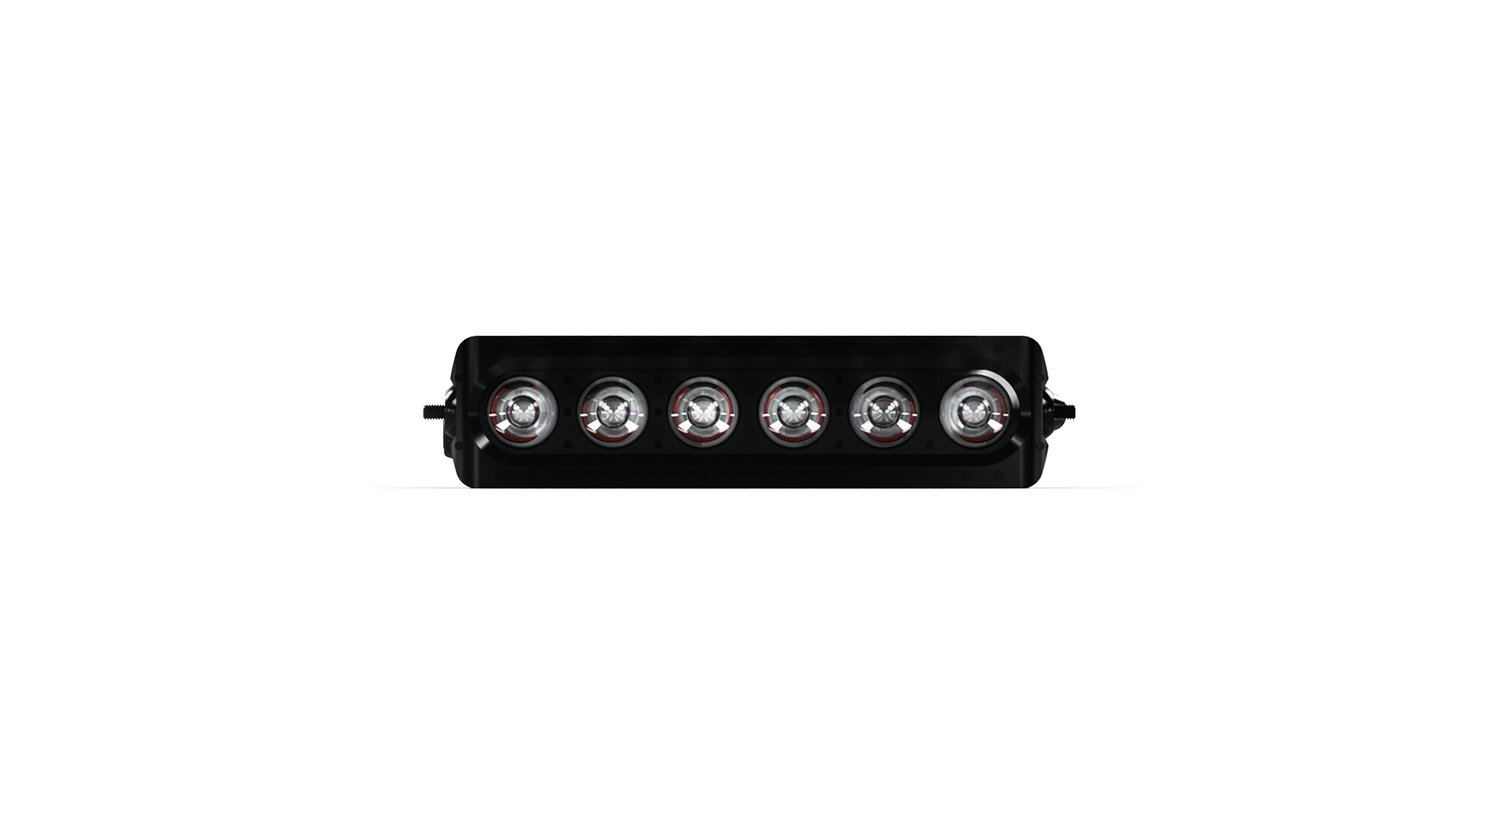 "Feniex AI Series 14"" Off-Road Light Bar"